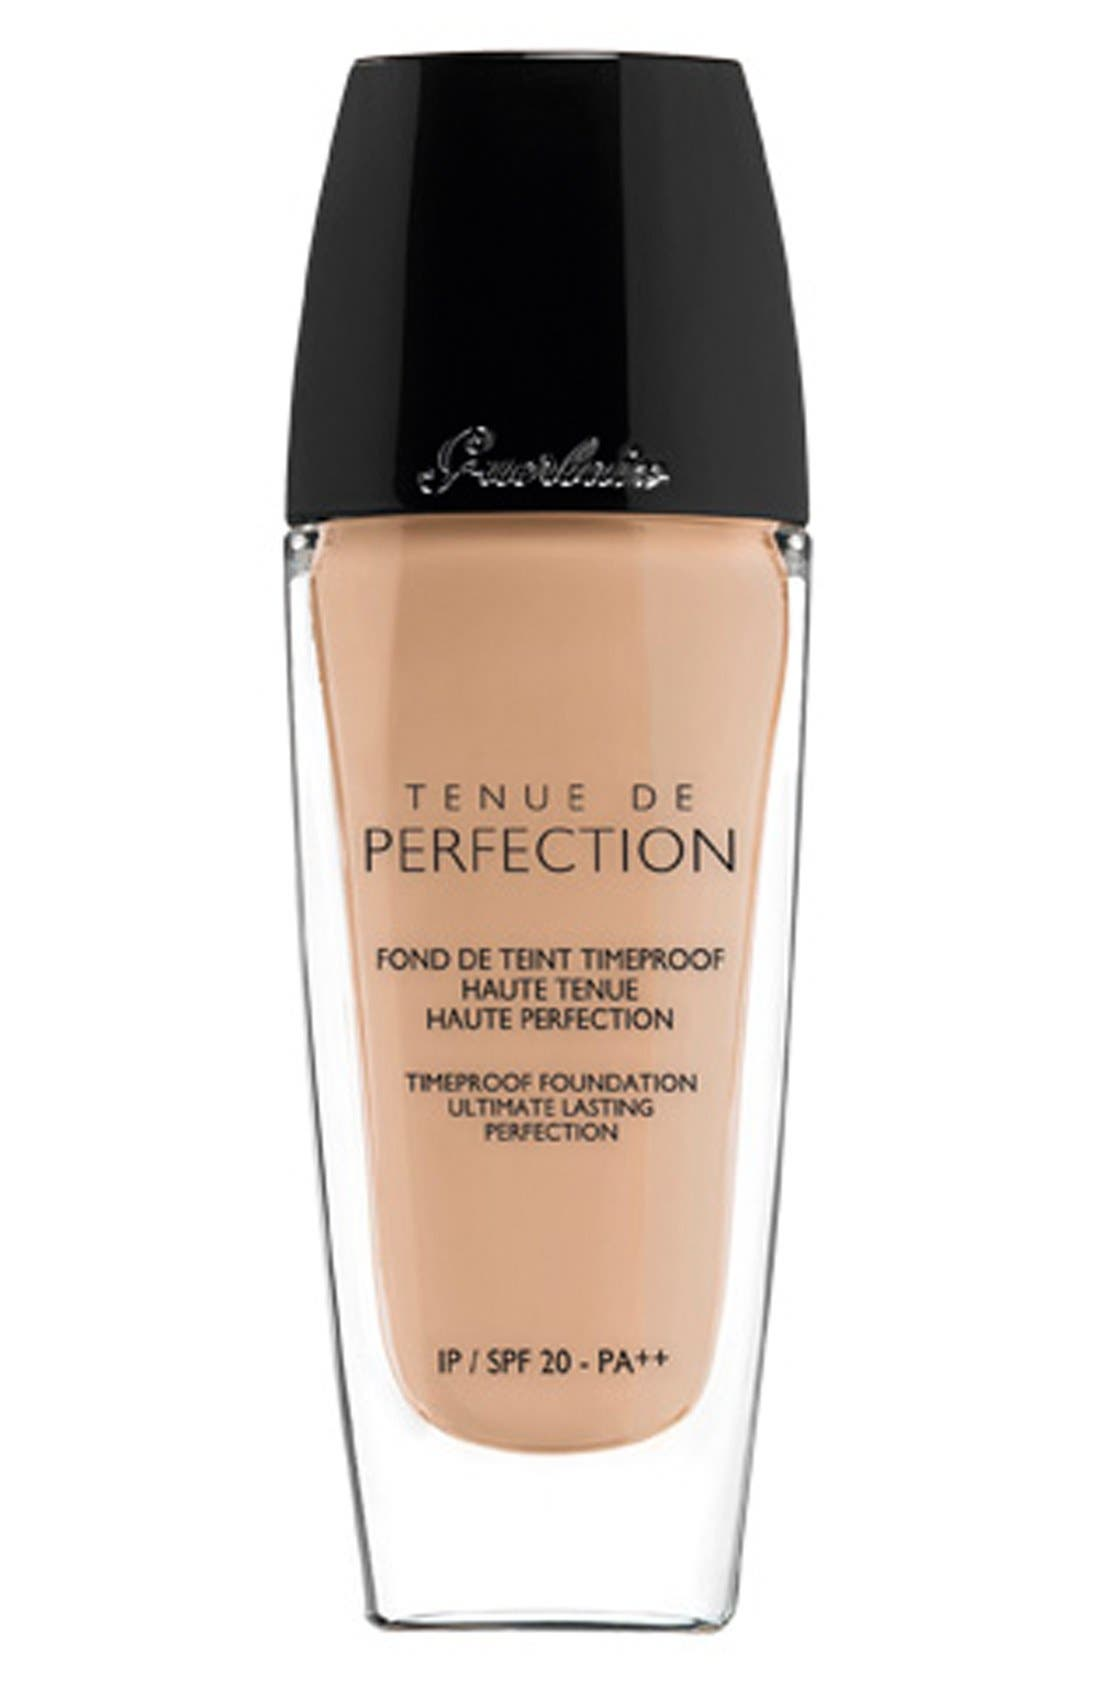 Guerlain 'Tenue de Perfection' Foundation SPF 20